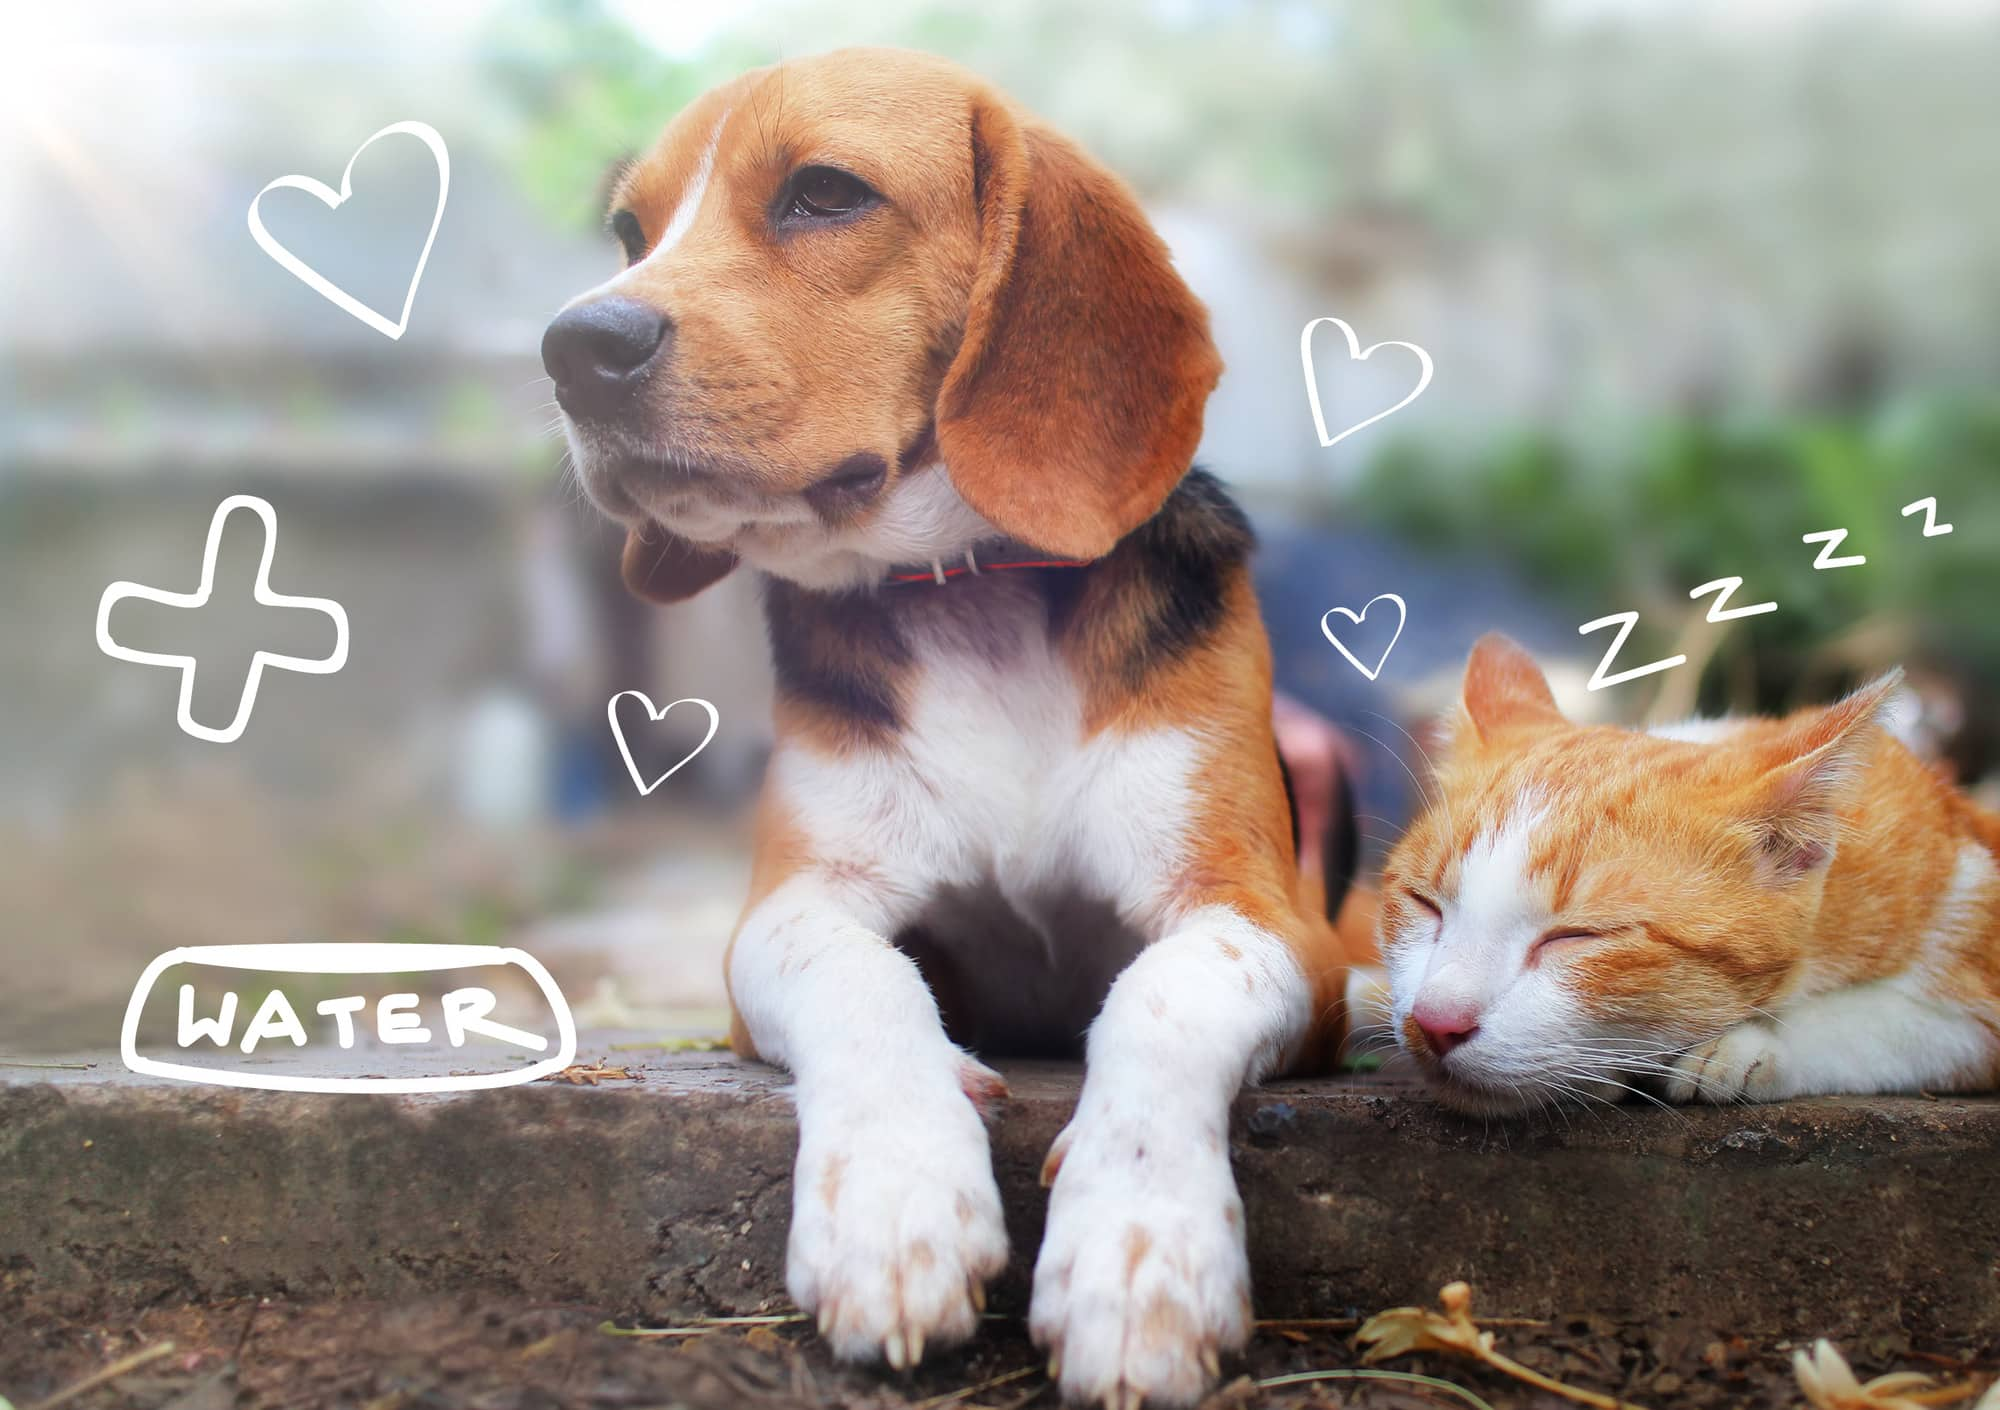 Flea treatments for cats and dogs - a dog and cat sit on a wall